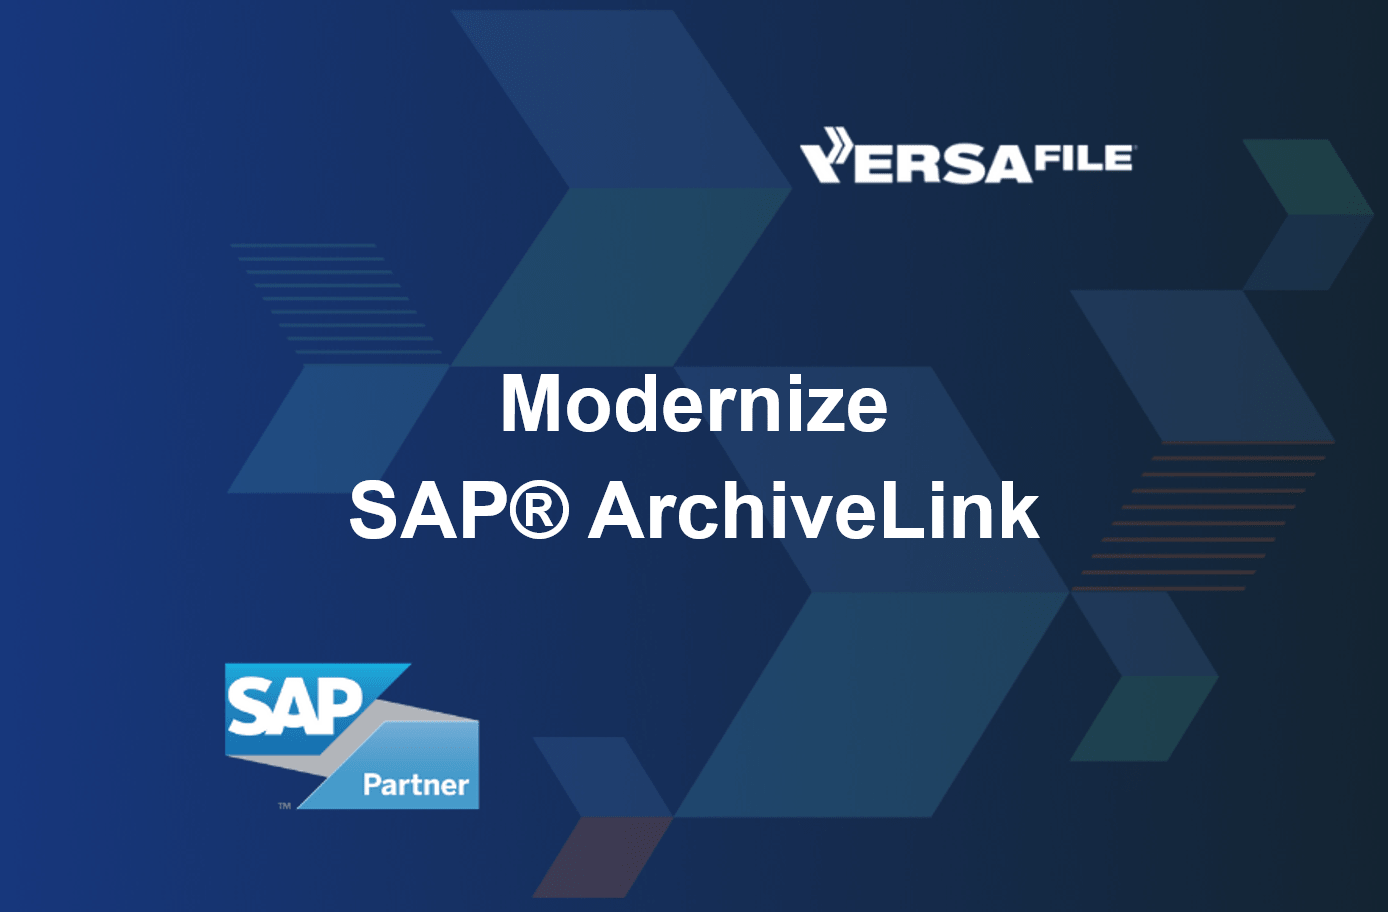 Three Big Reasons to Modernize SAP ArchiveLink